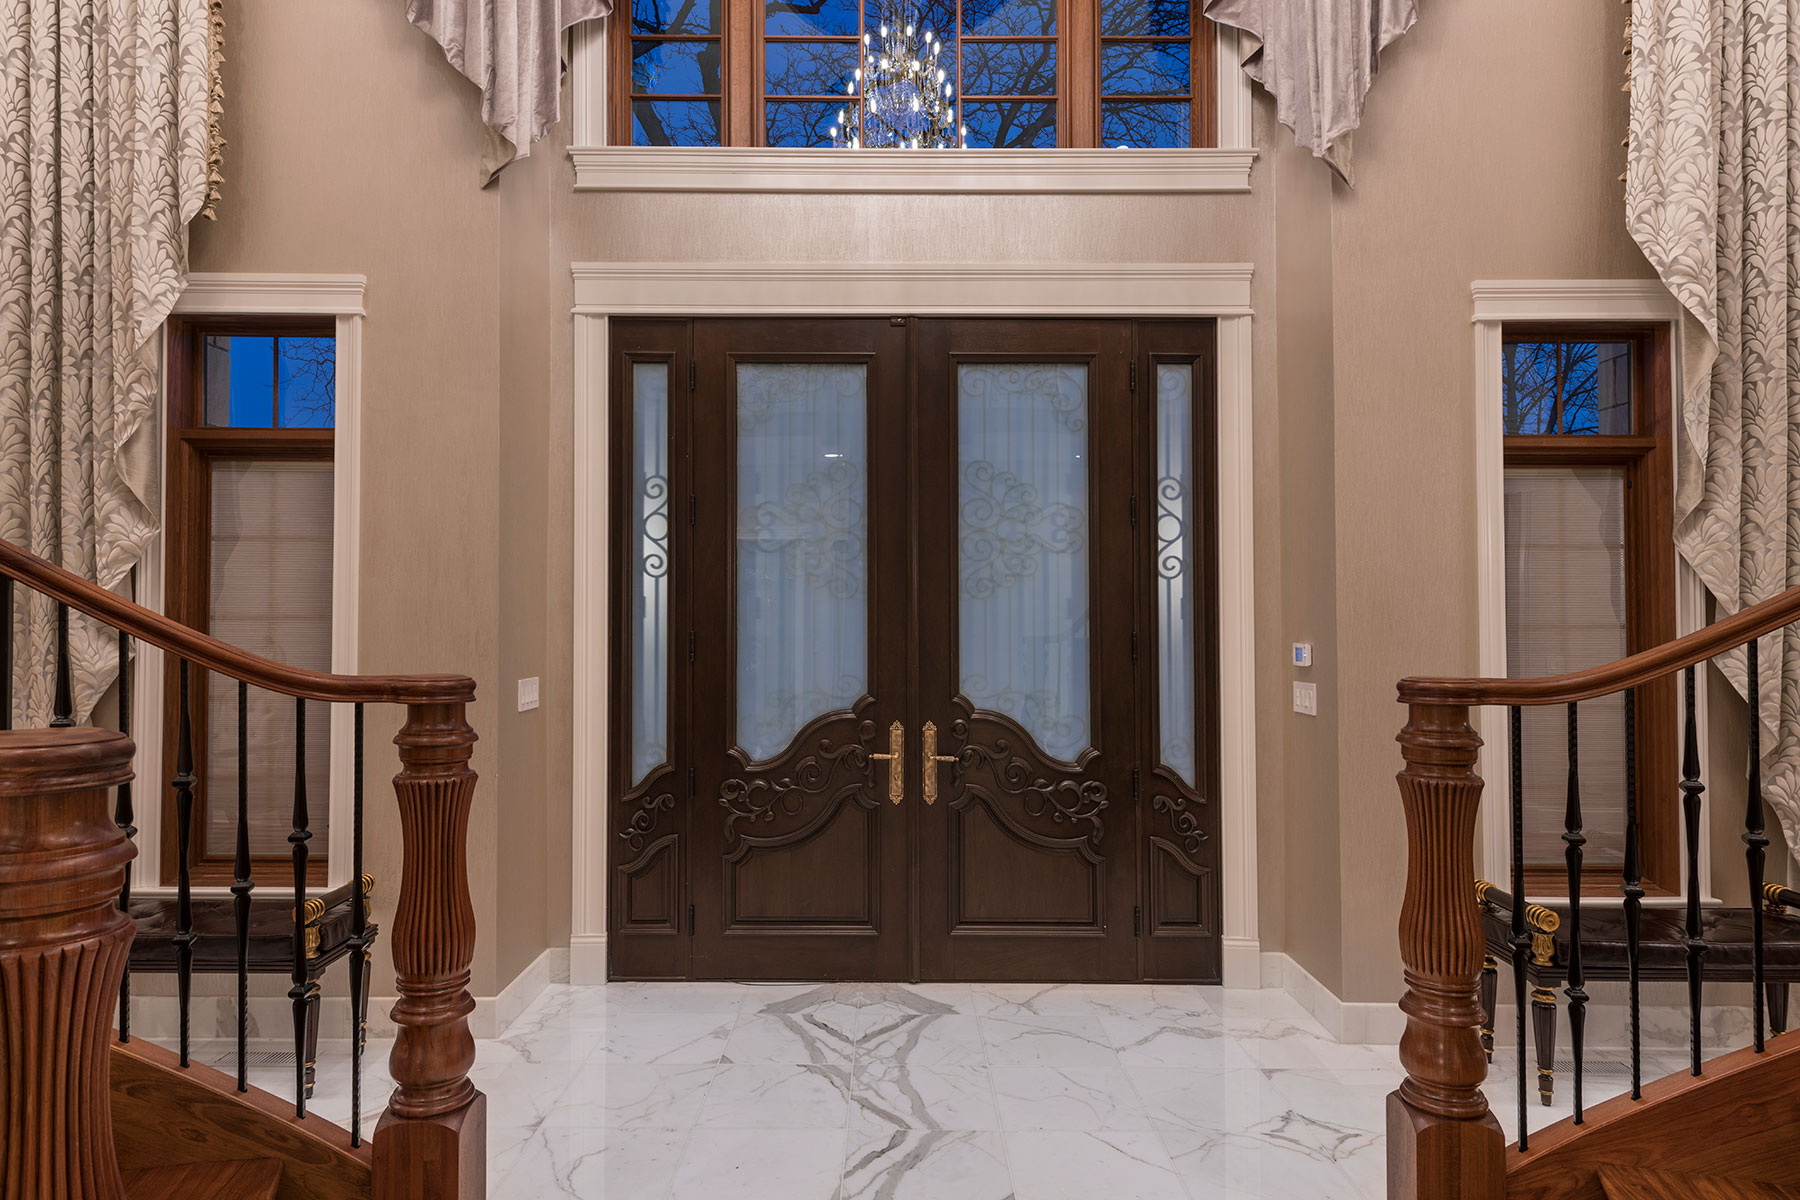 Glass Elevator - Mango Ave., Morton Grove, IL Custom Home. America's Custom Home Builders: New Construction, Remodeling, Restoration Services. Residential and Commercial.